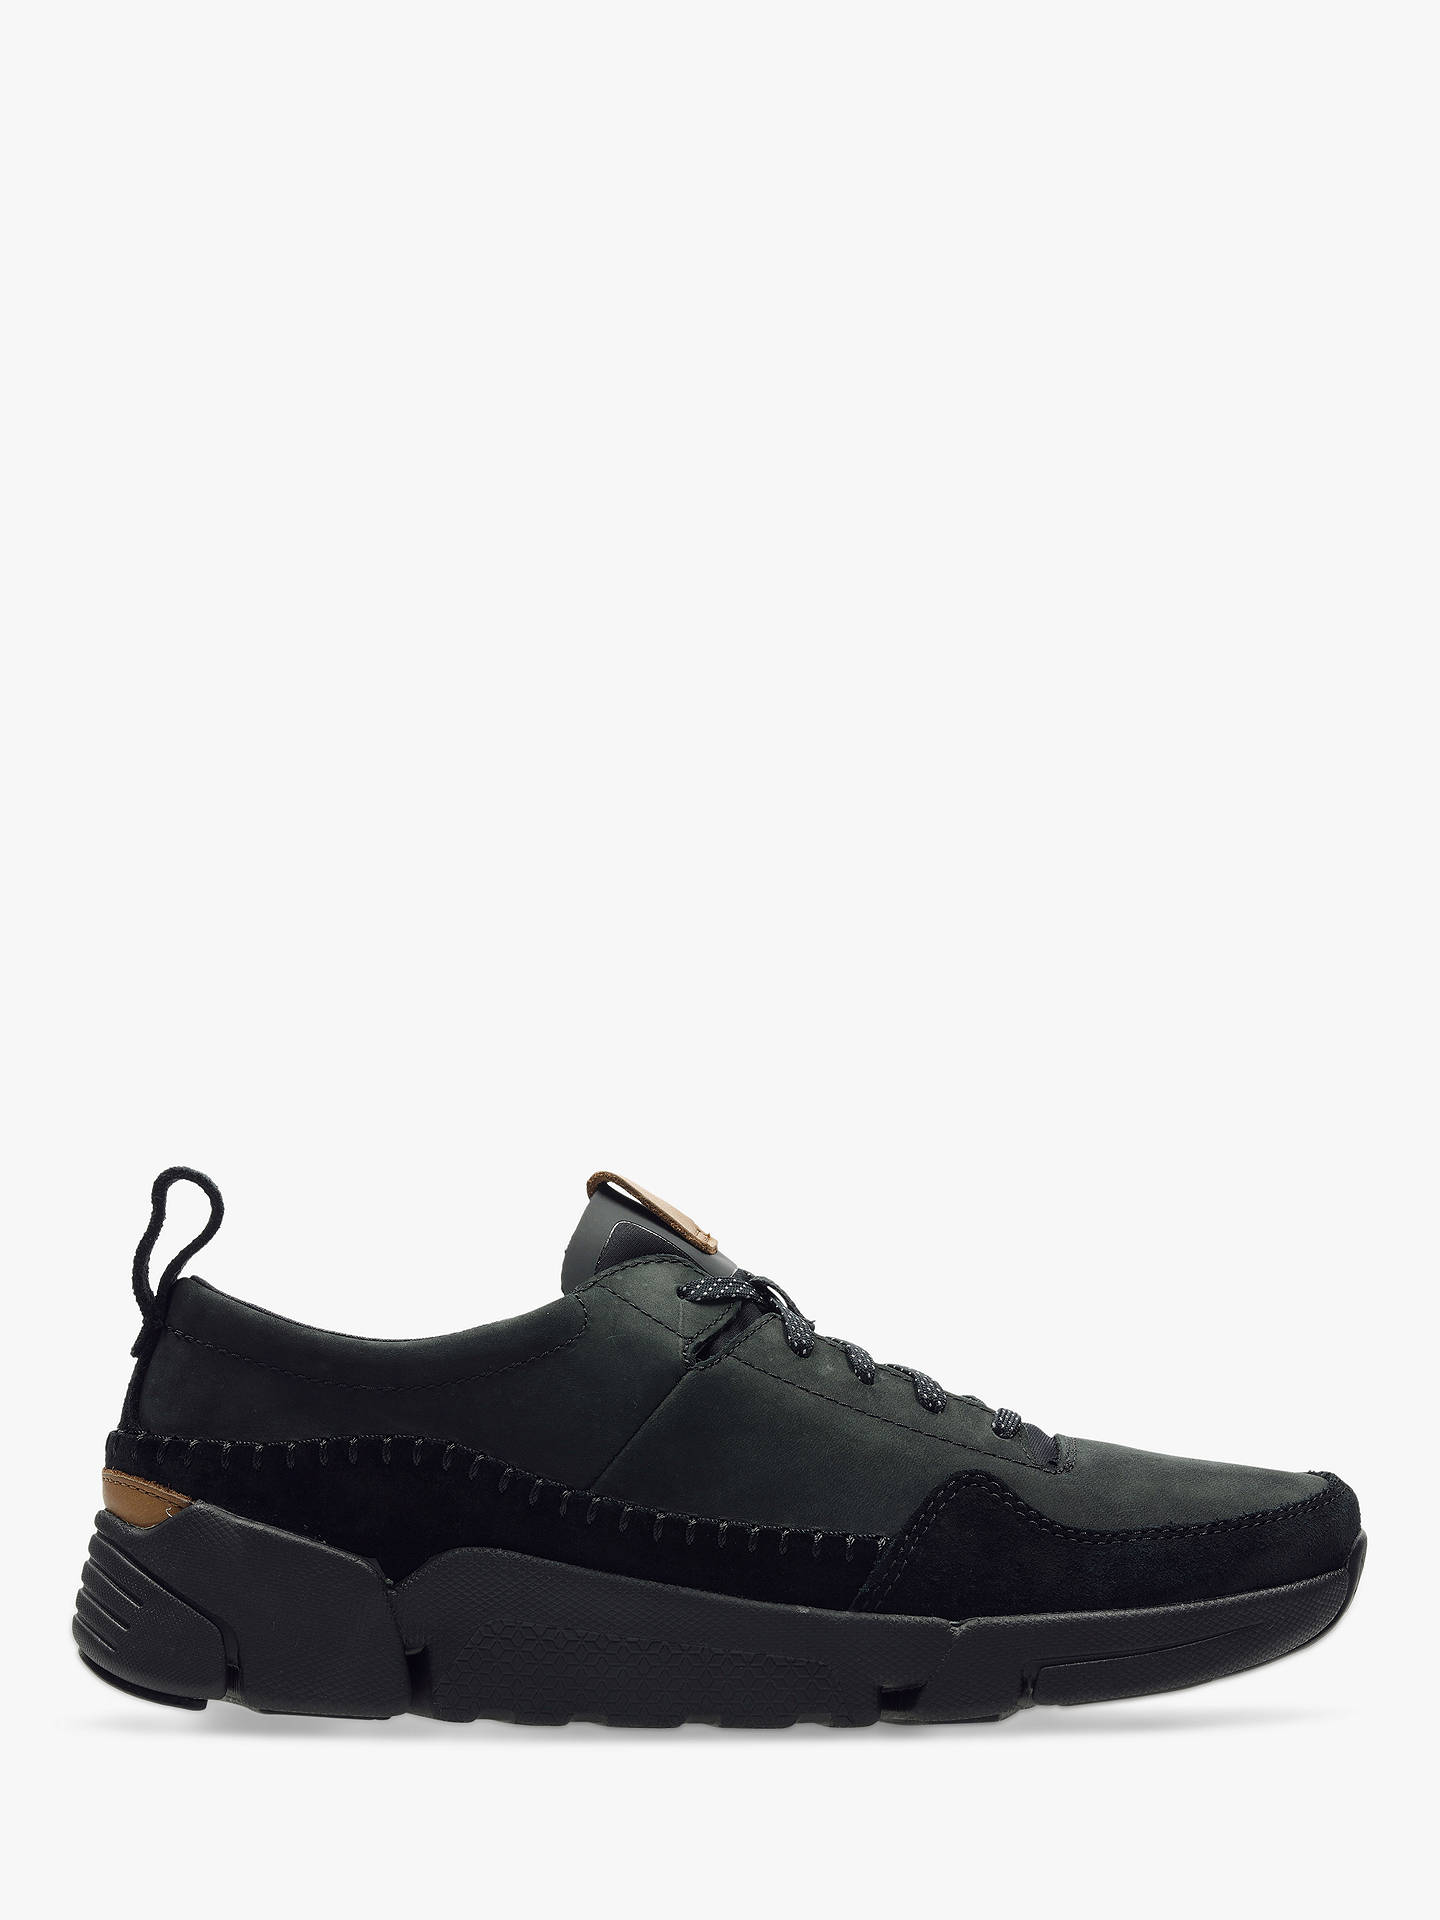 7c5ef7da0a9 Clarks TriActive Run Leather Trainers at John Lewis   Partners